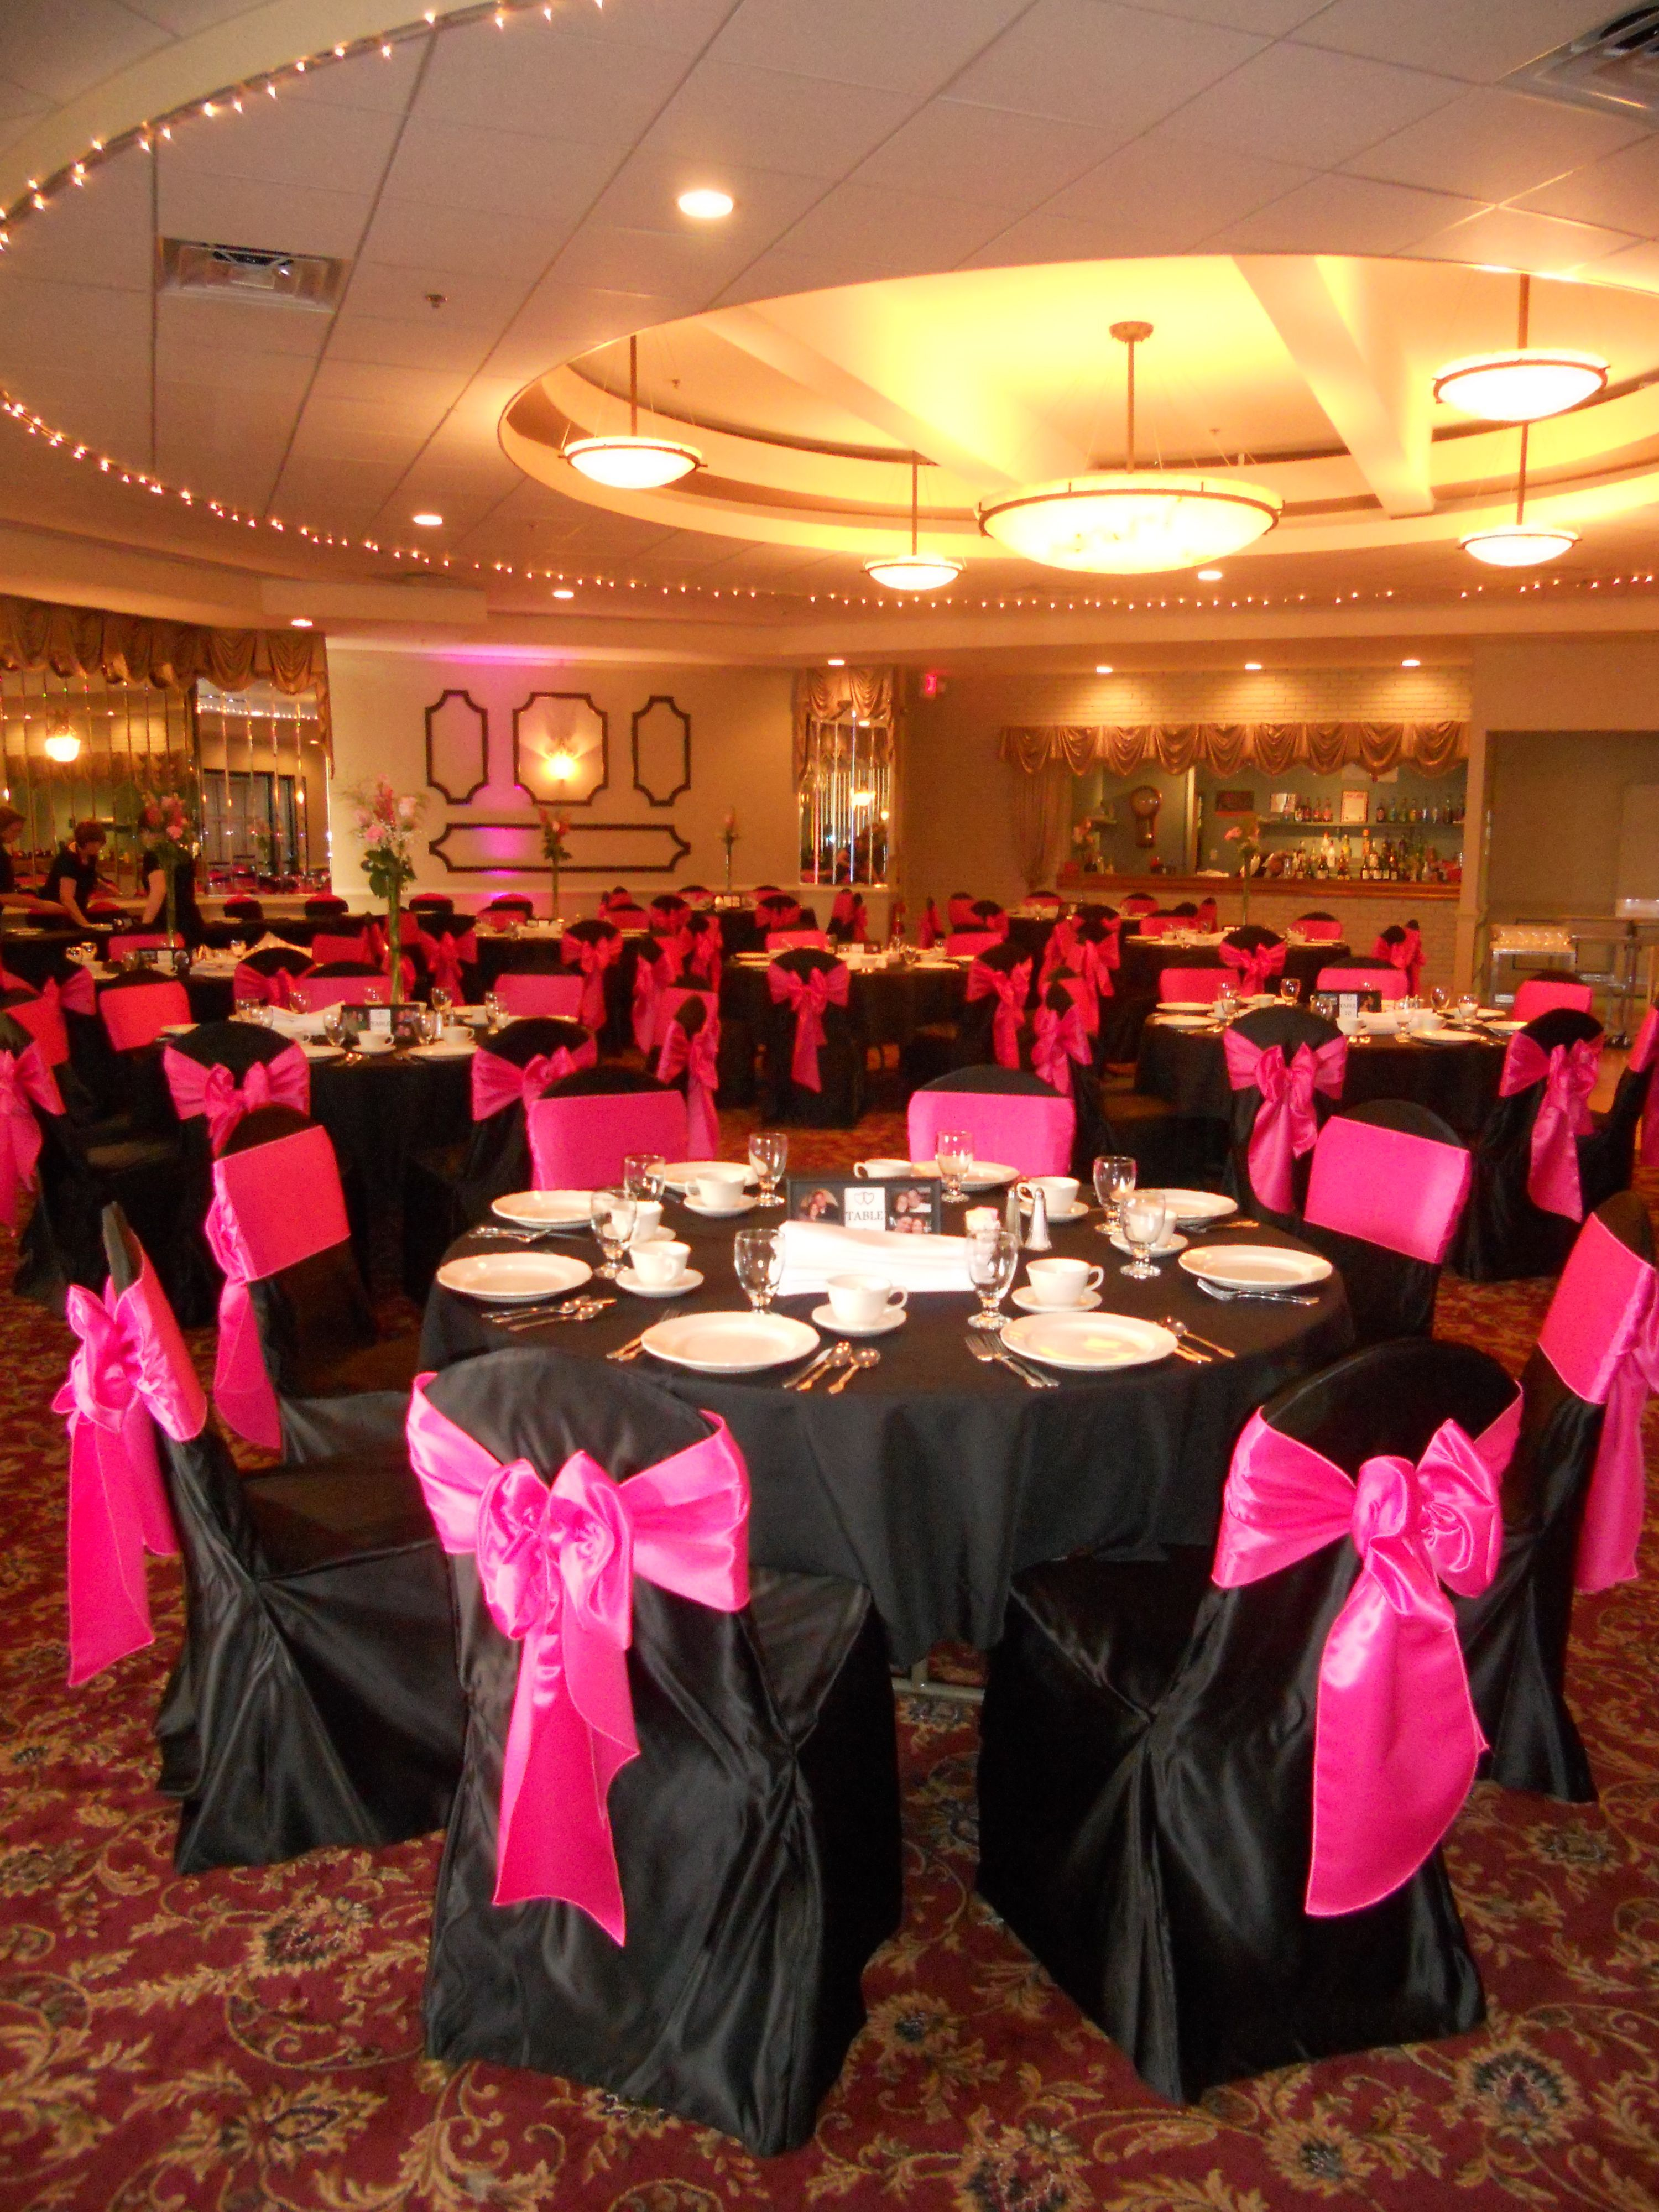 Black Chair Covers with Hot Pink Bow Ties